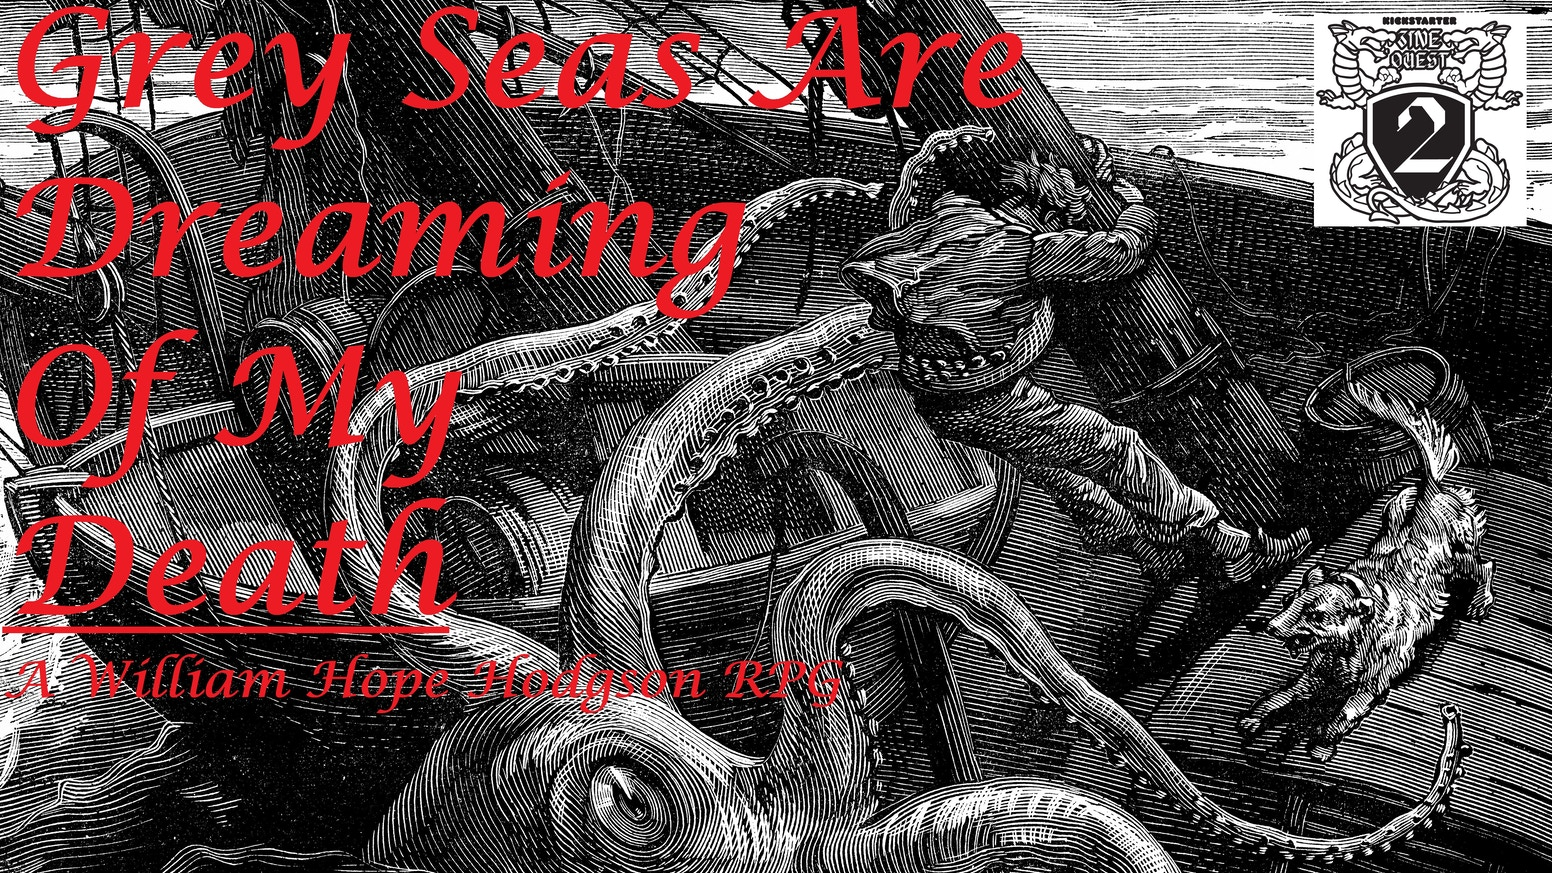 A supernatural seafaring adventure RPG zine set in the weed choked depths of William Hope Hodgson's Sargasso Seas.